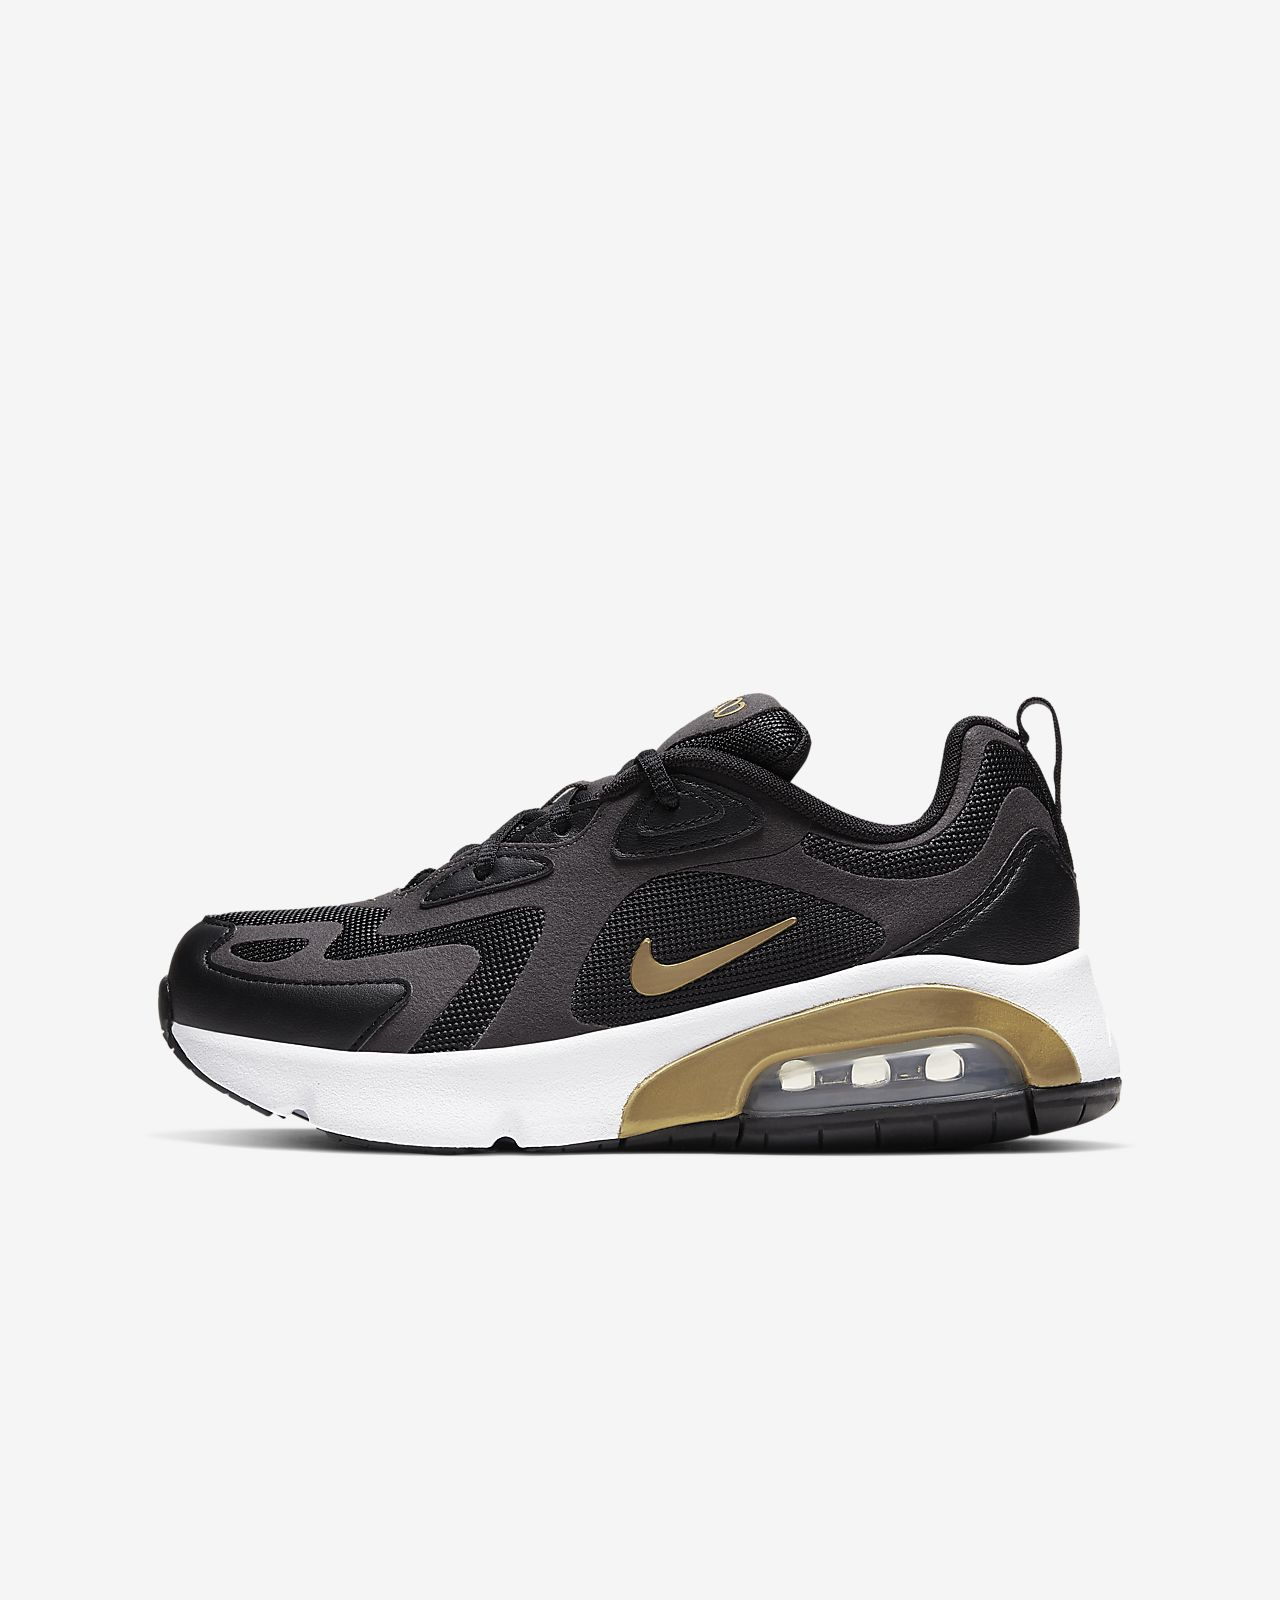 Best Nike Air Max Thea Women's Trainers BlackAnthracite on Sale